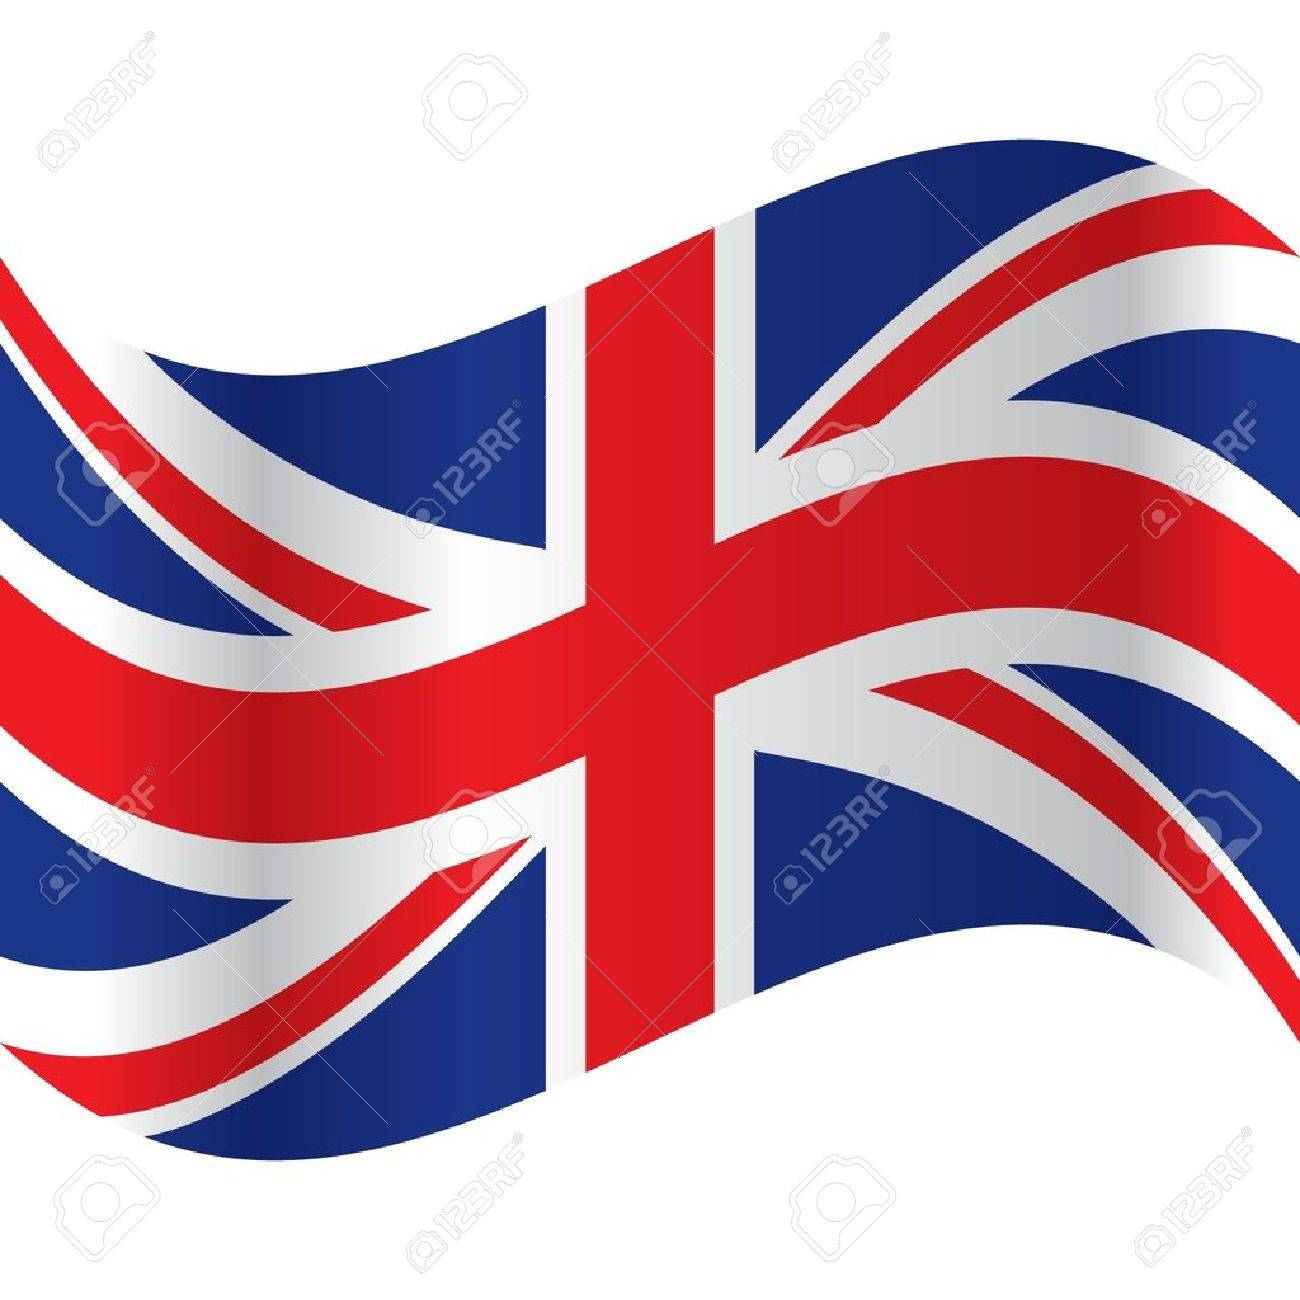 official flag of great britain Stock Vector - 14558470